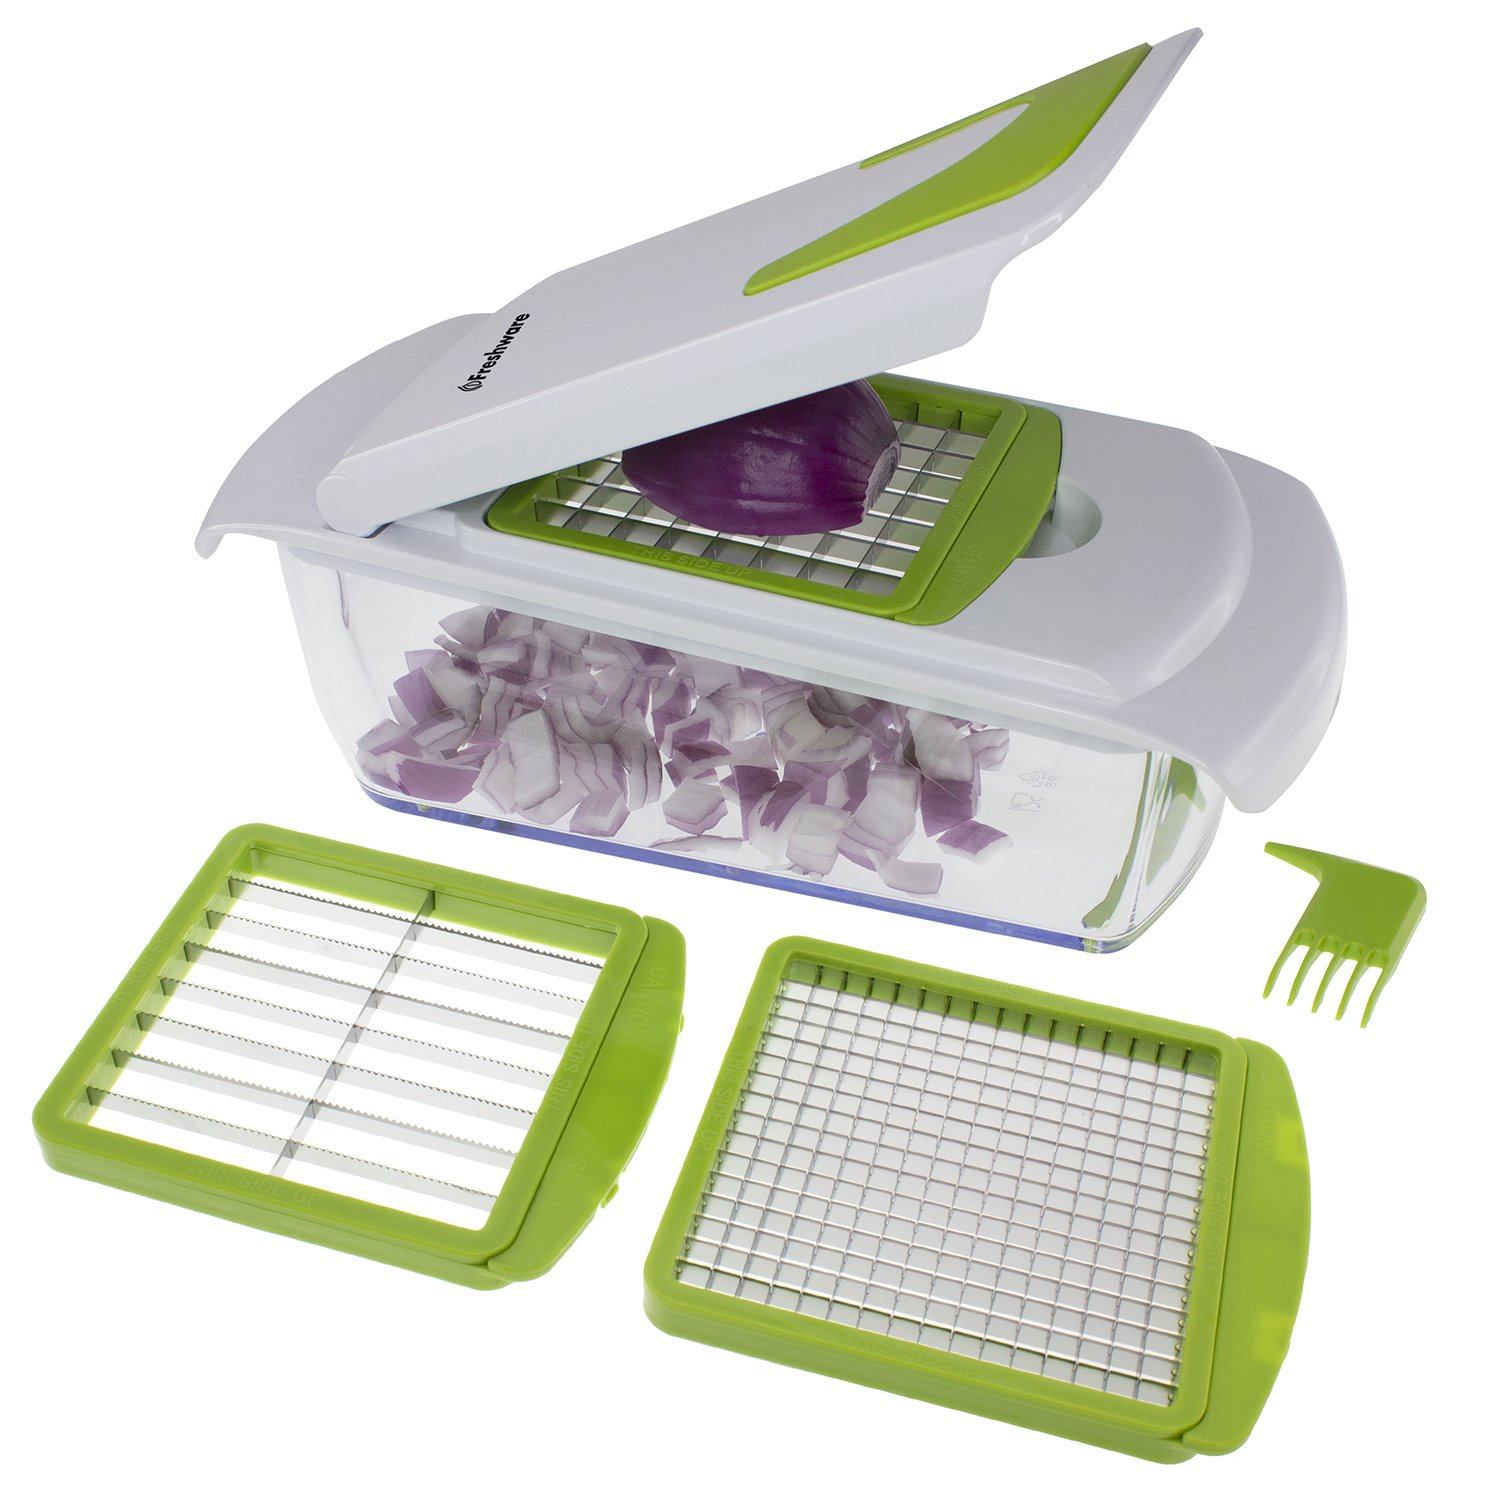 Freshware KT-405 4-in-1 Onion Chopper, Vegetable Slicer, Fruit and Cheese Cutter Container with Storage Lid by Freshware